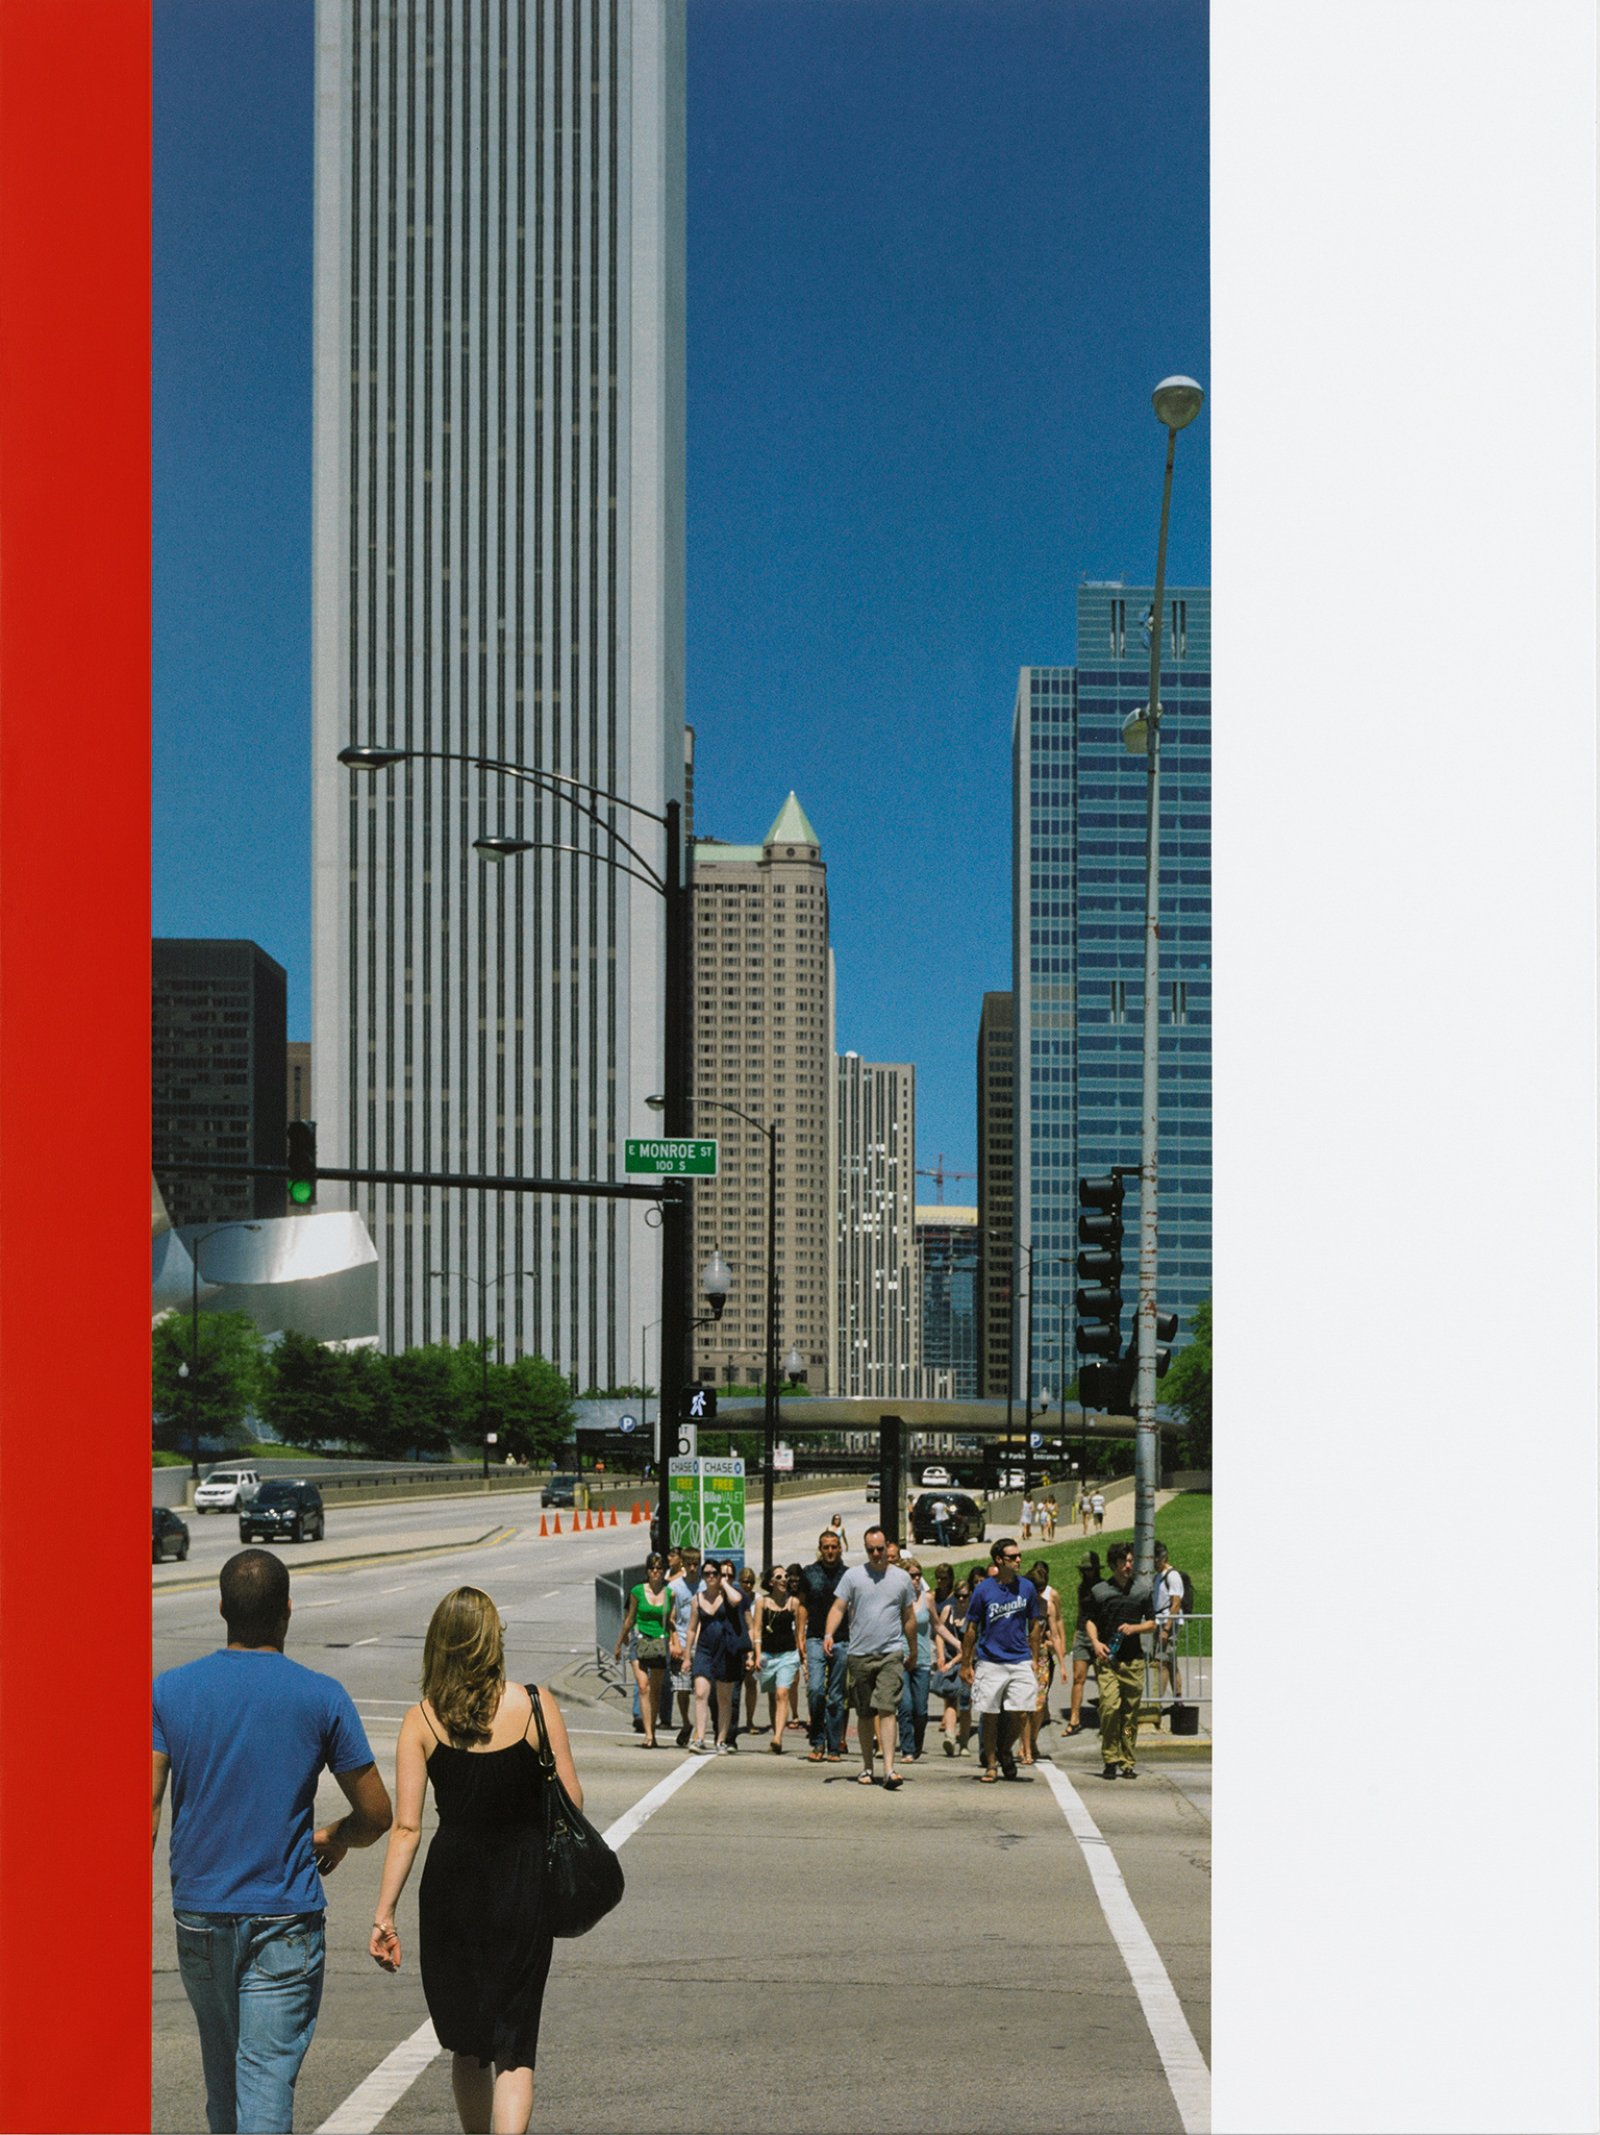 Ian Wallace, Chicago Crosswalk, 2007, photolaminate with acrylic on canvas, 96 x 72 in. (244 x 183 cm). Installation view, A Literature of Images, Kunsthalle Zürich, 2008 by Ian Wallace